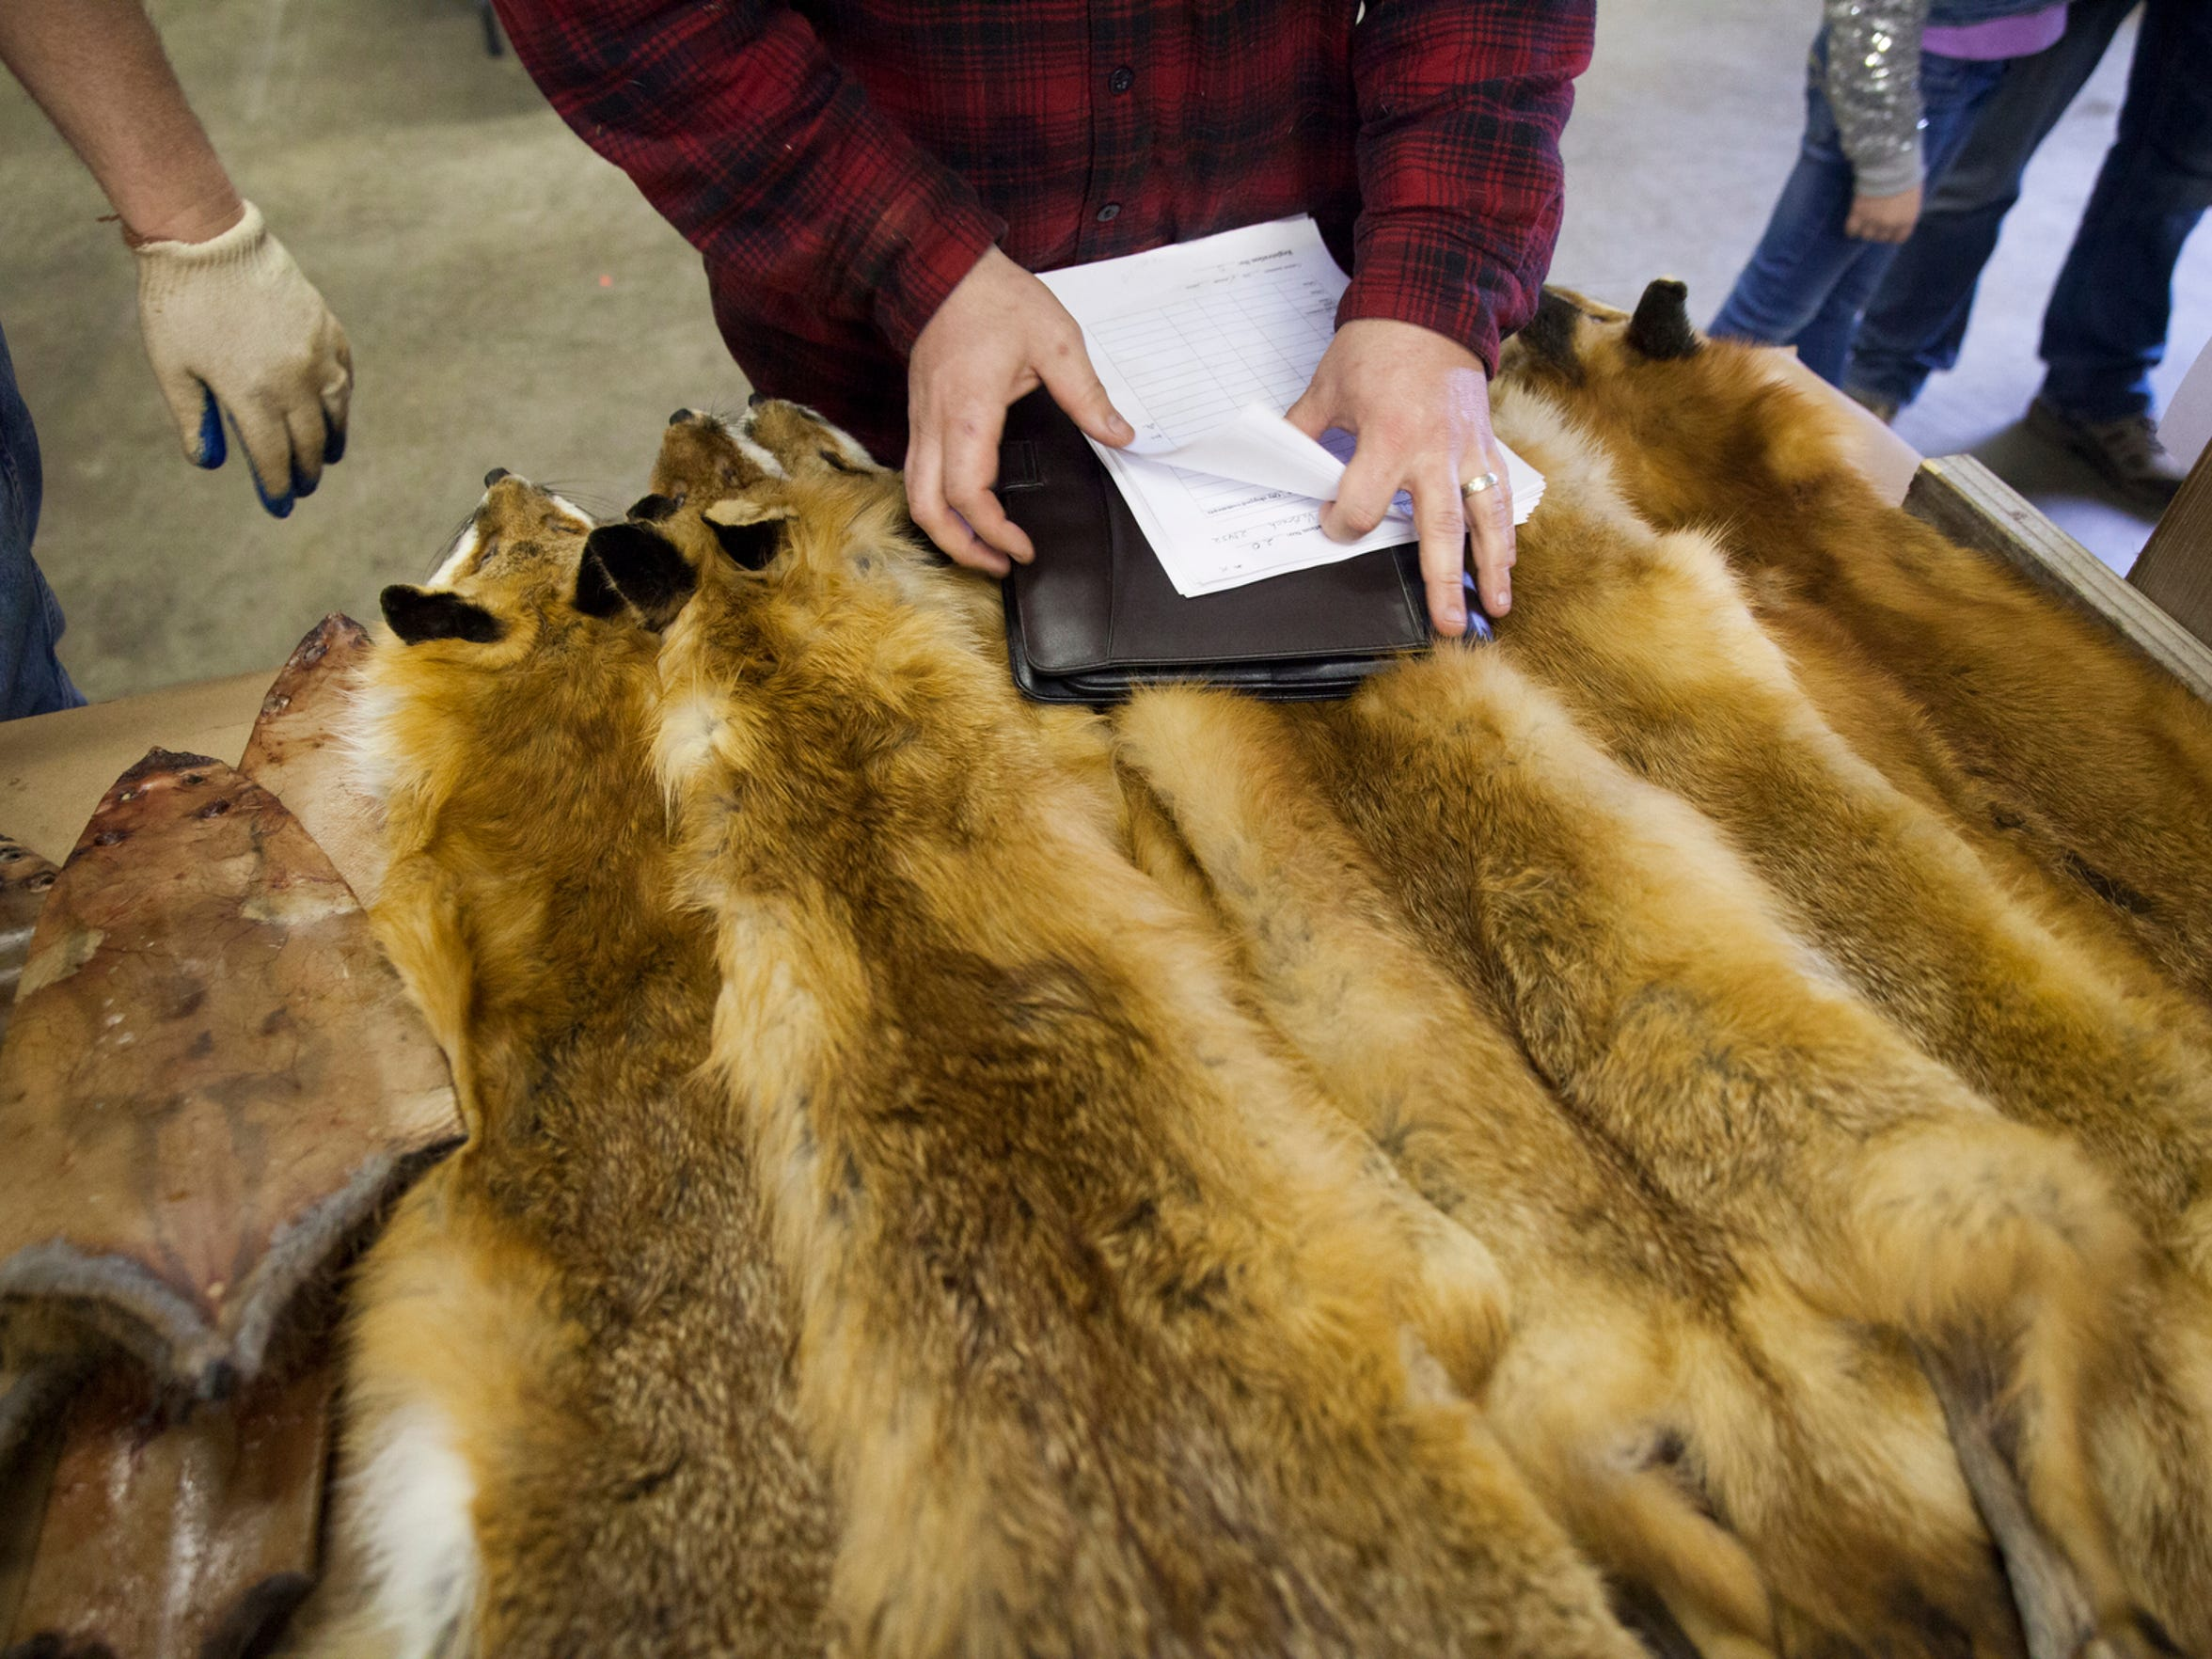 Brian Lacey, a fur buyer at the Virginia Trappers Association annual auction, leafs through pages of notes on the condition of animal pelts for sale at Augusta Expo on Saturday, March 14, 2015.